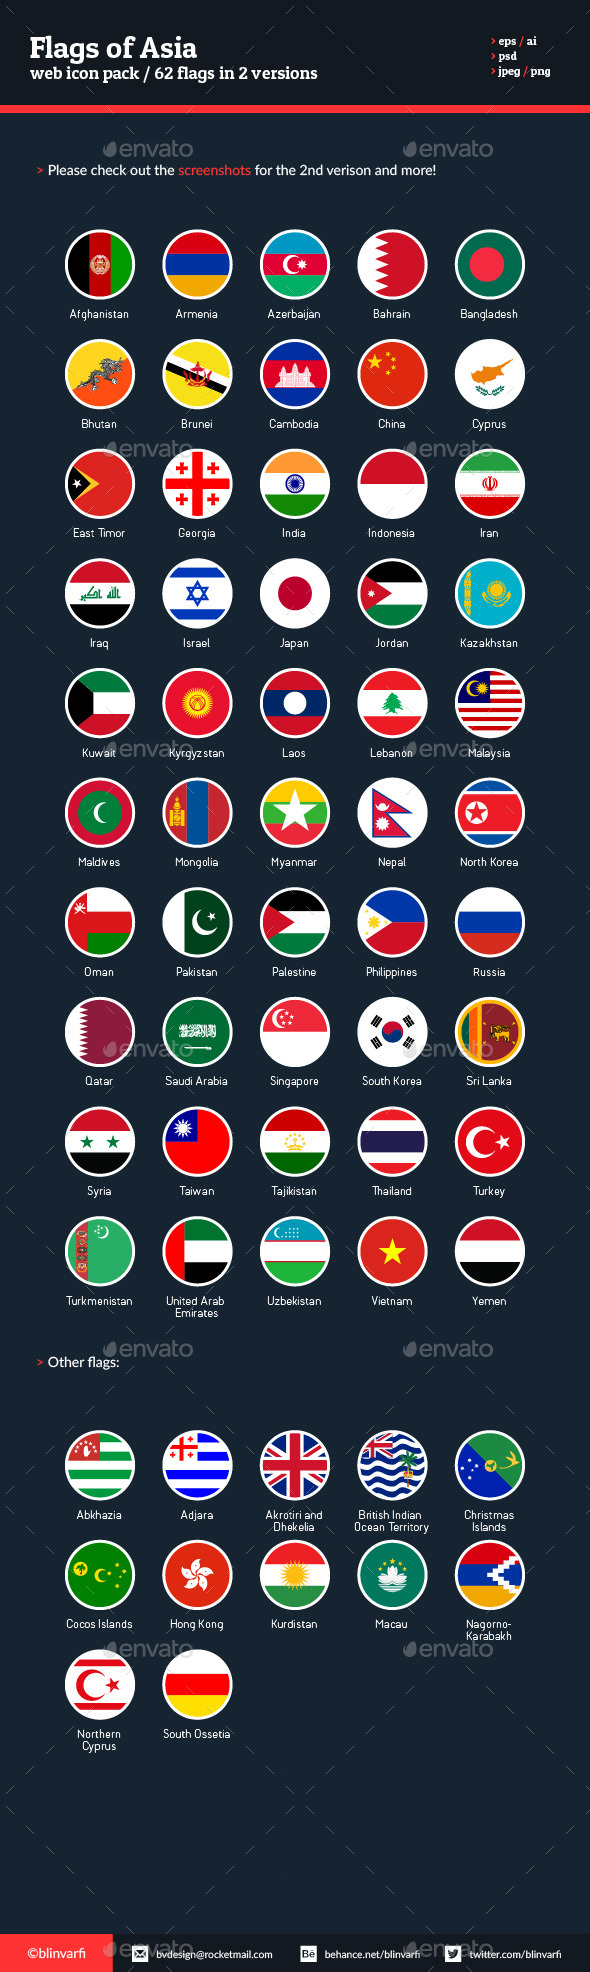 Flags of Asia - Flag Icons - Web Icons